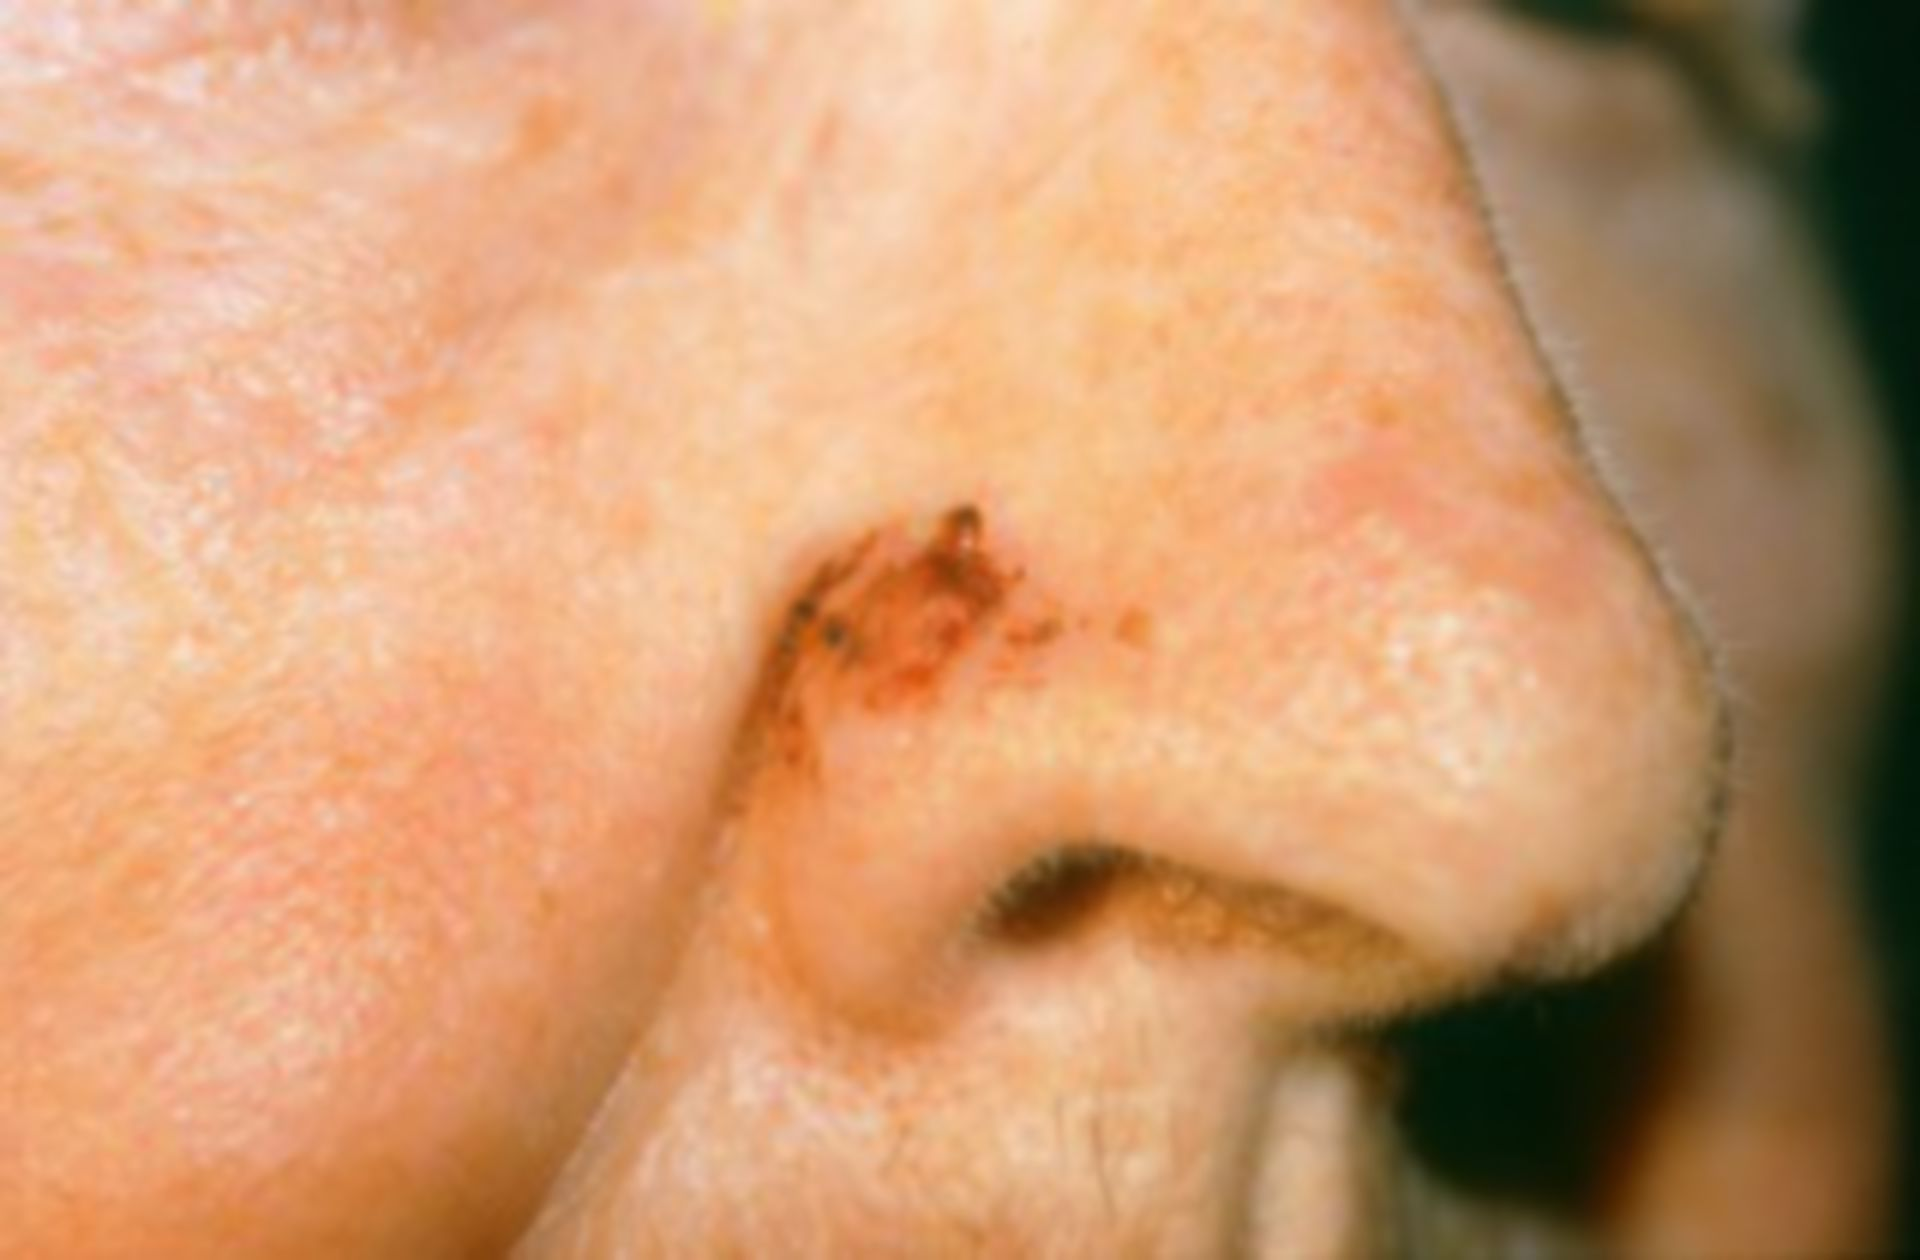 Skin cancer ala of the nose